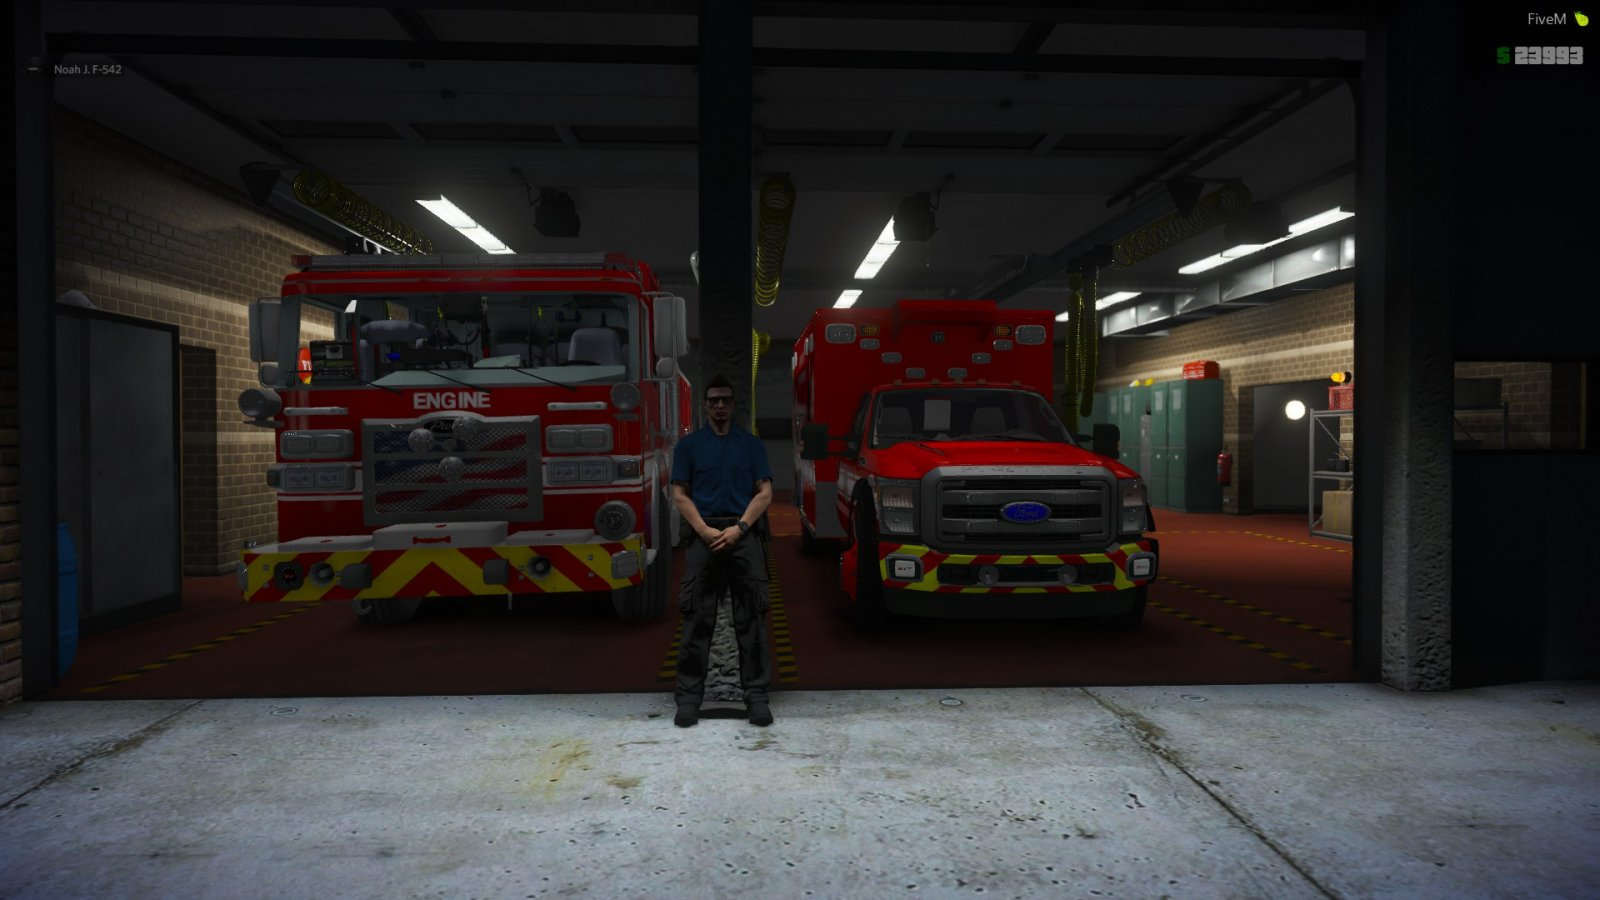 Station 6 ready for calls